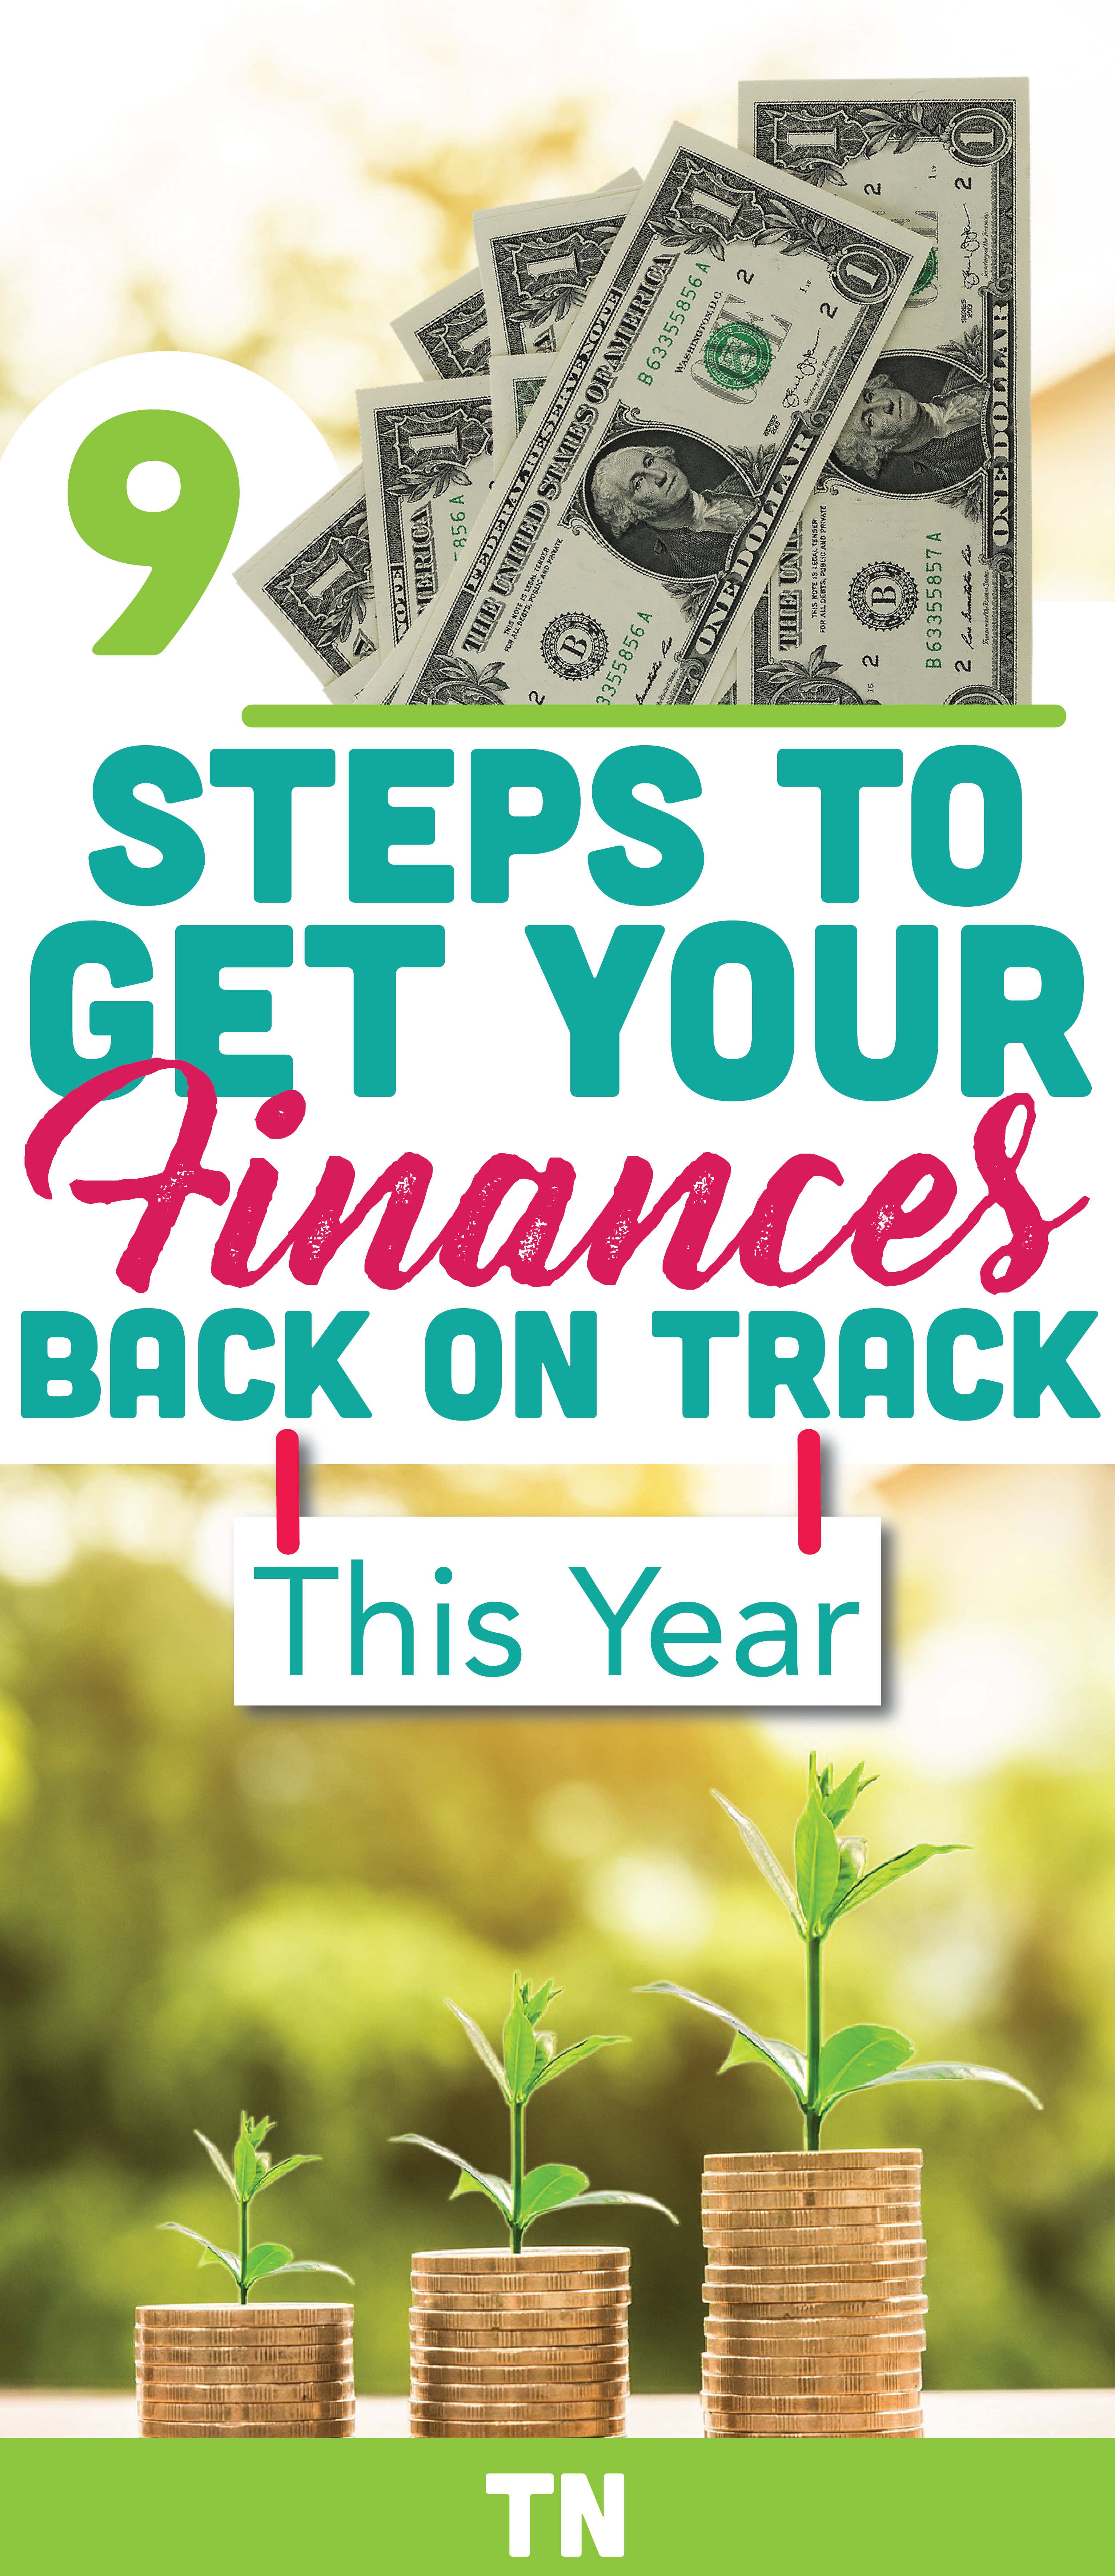 9 easy steps to get your money back on track this year email